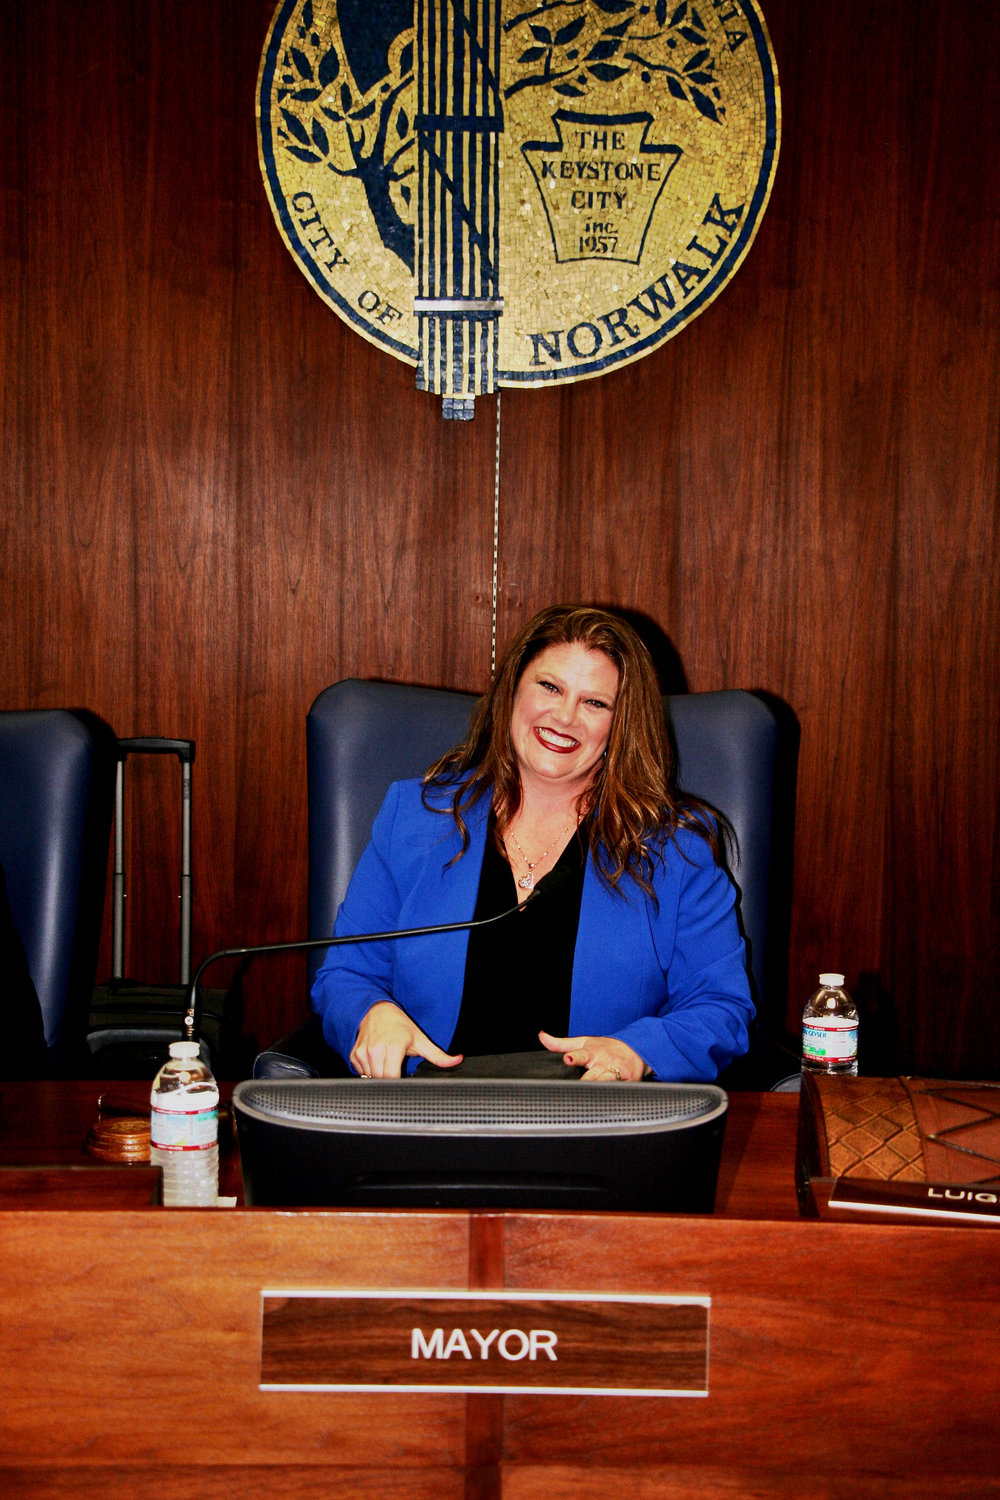 Norwalk mayor Jennifer Perez on Tuesday. Photo courtesy city of Norwalk